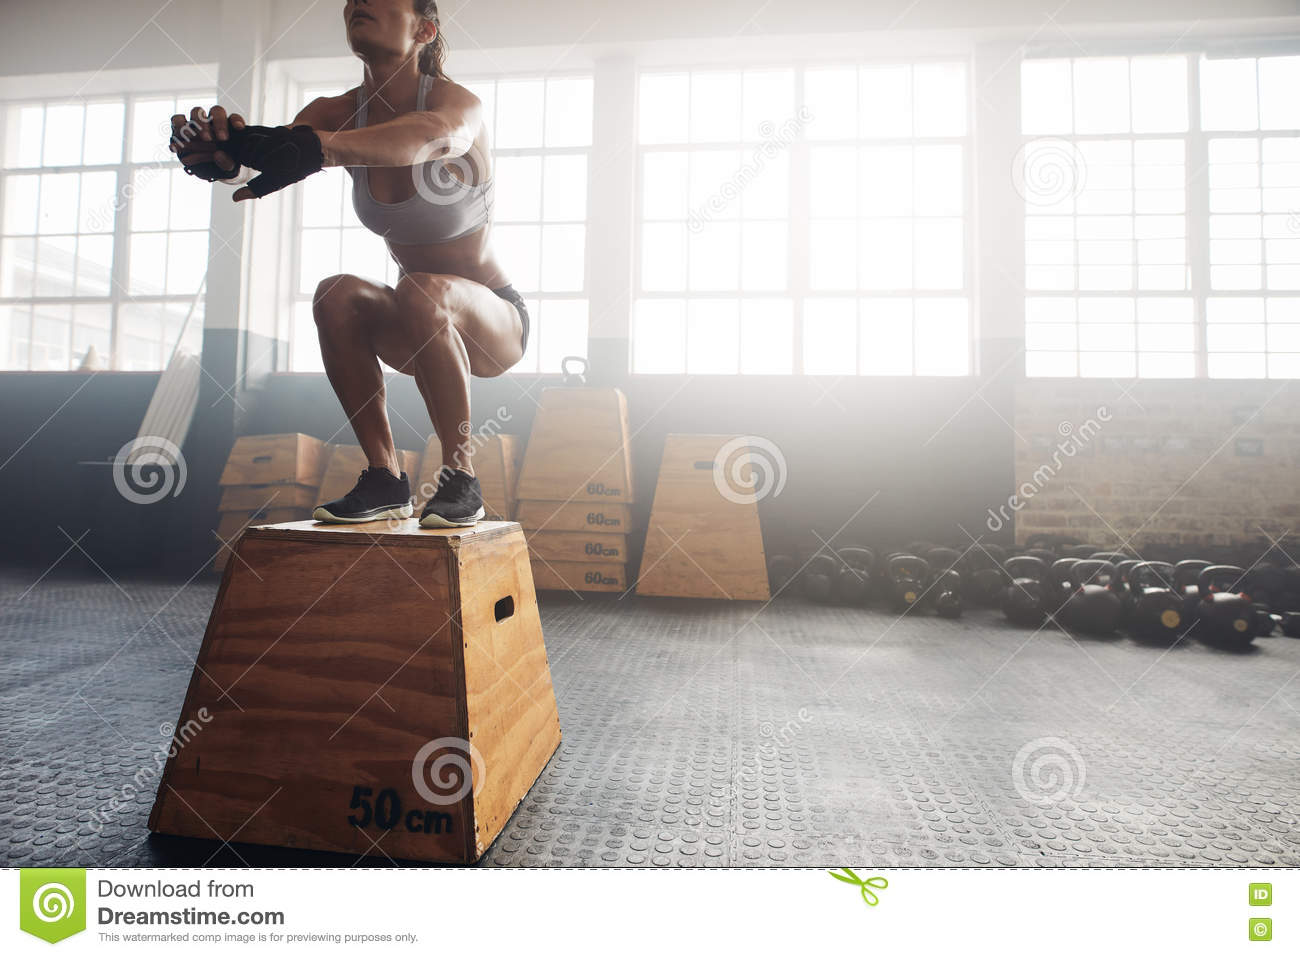 Fitness woman doing box jump workout at crossfit gym